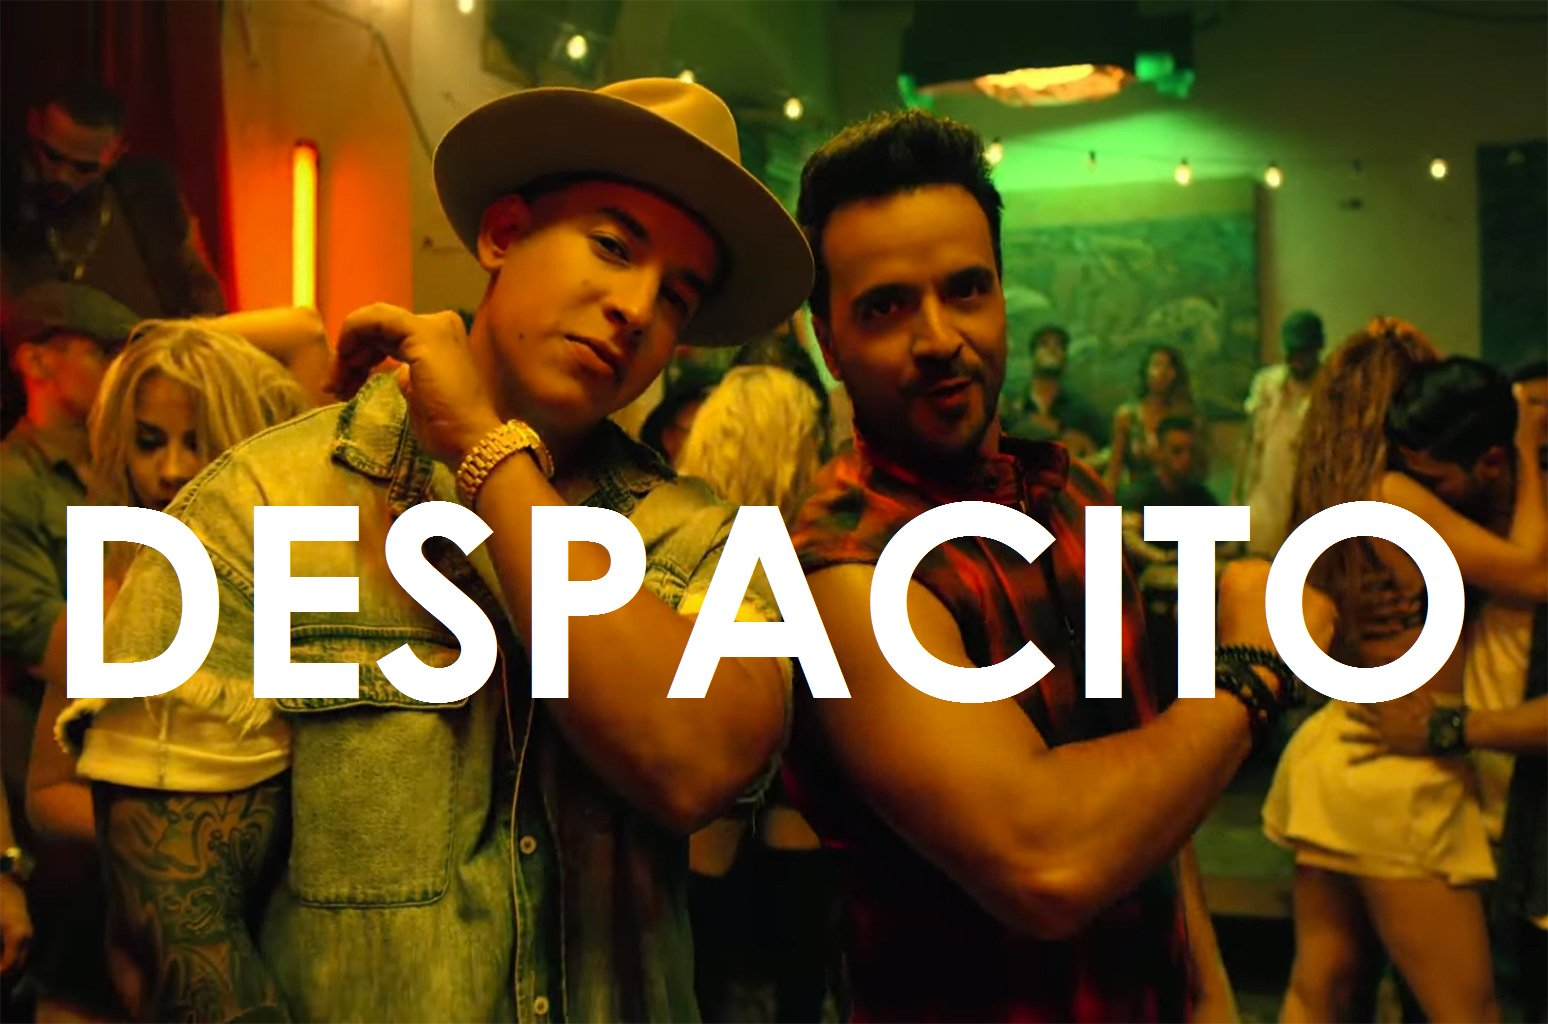 despacito afinal significa celebrated